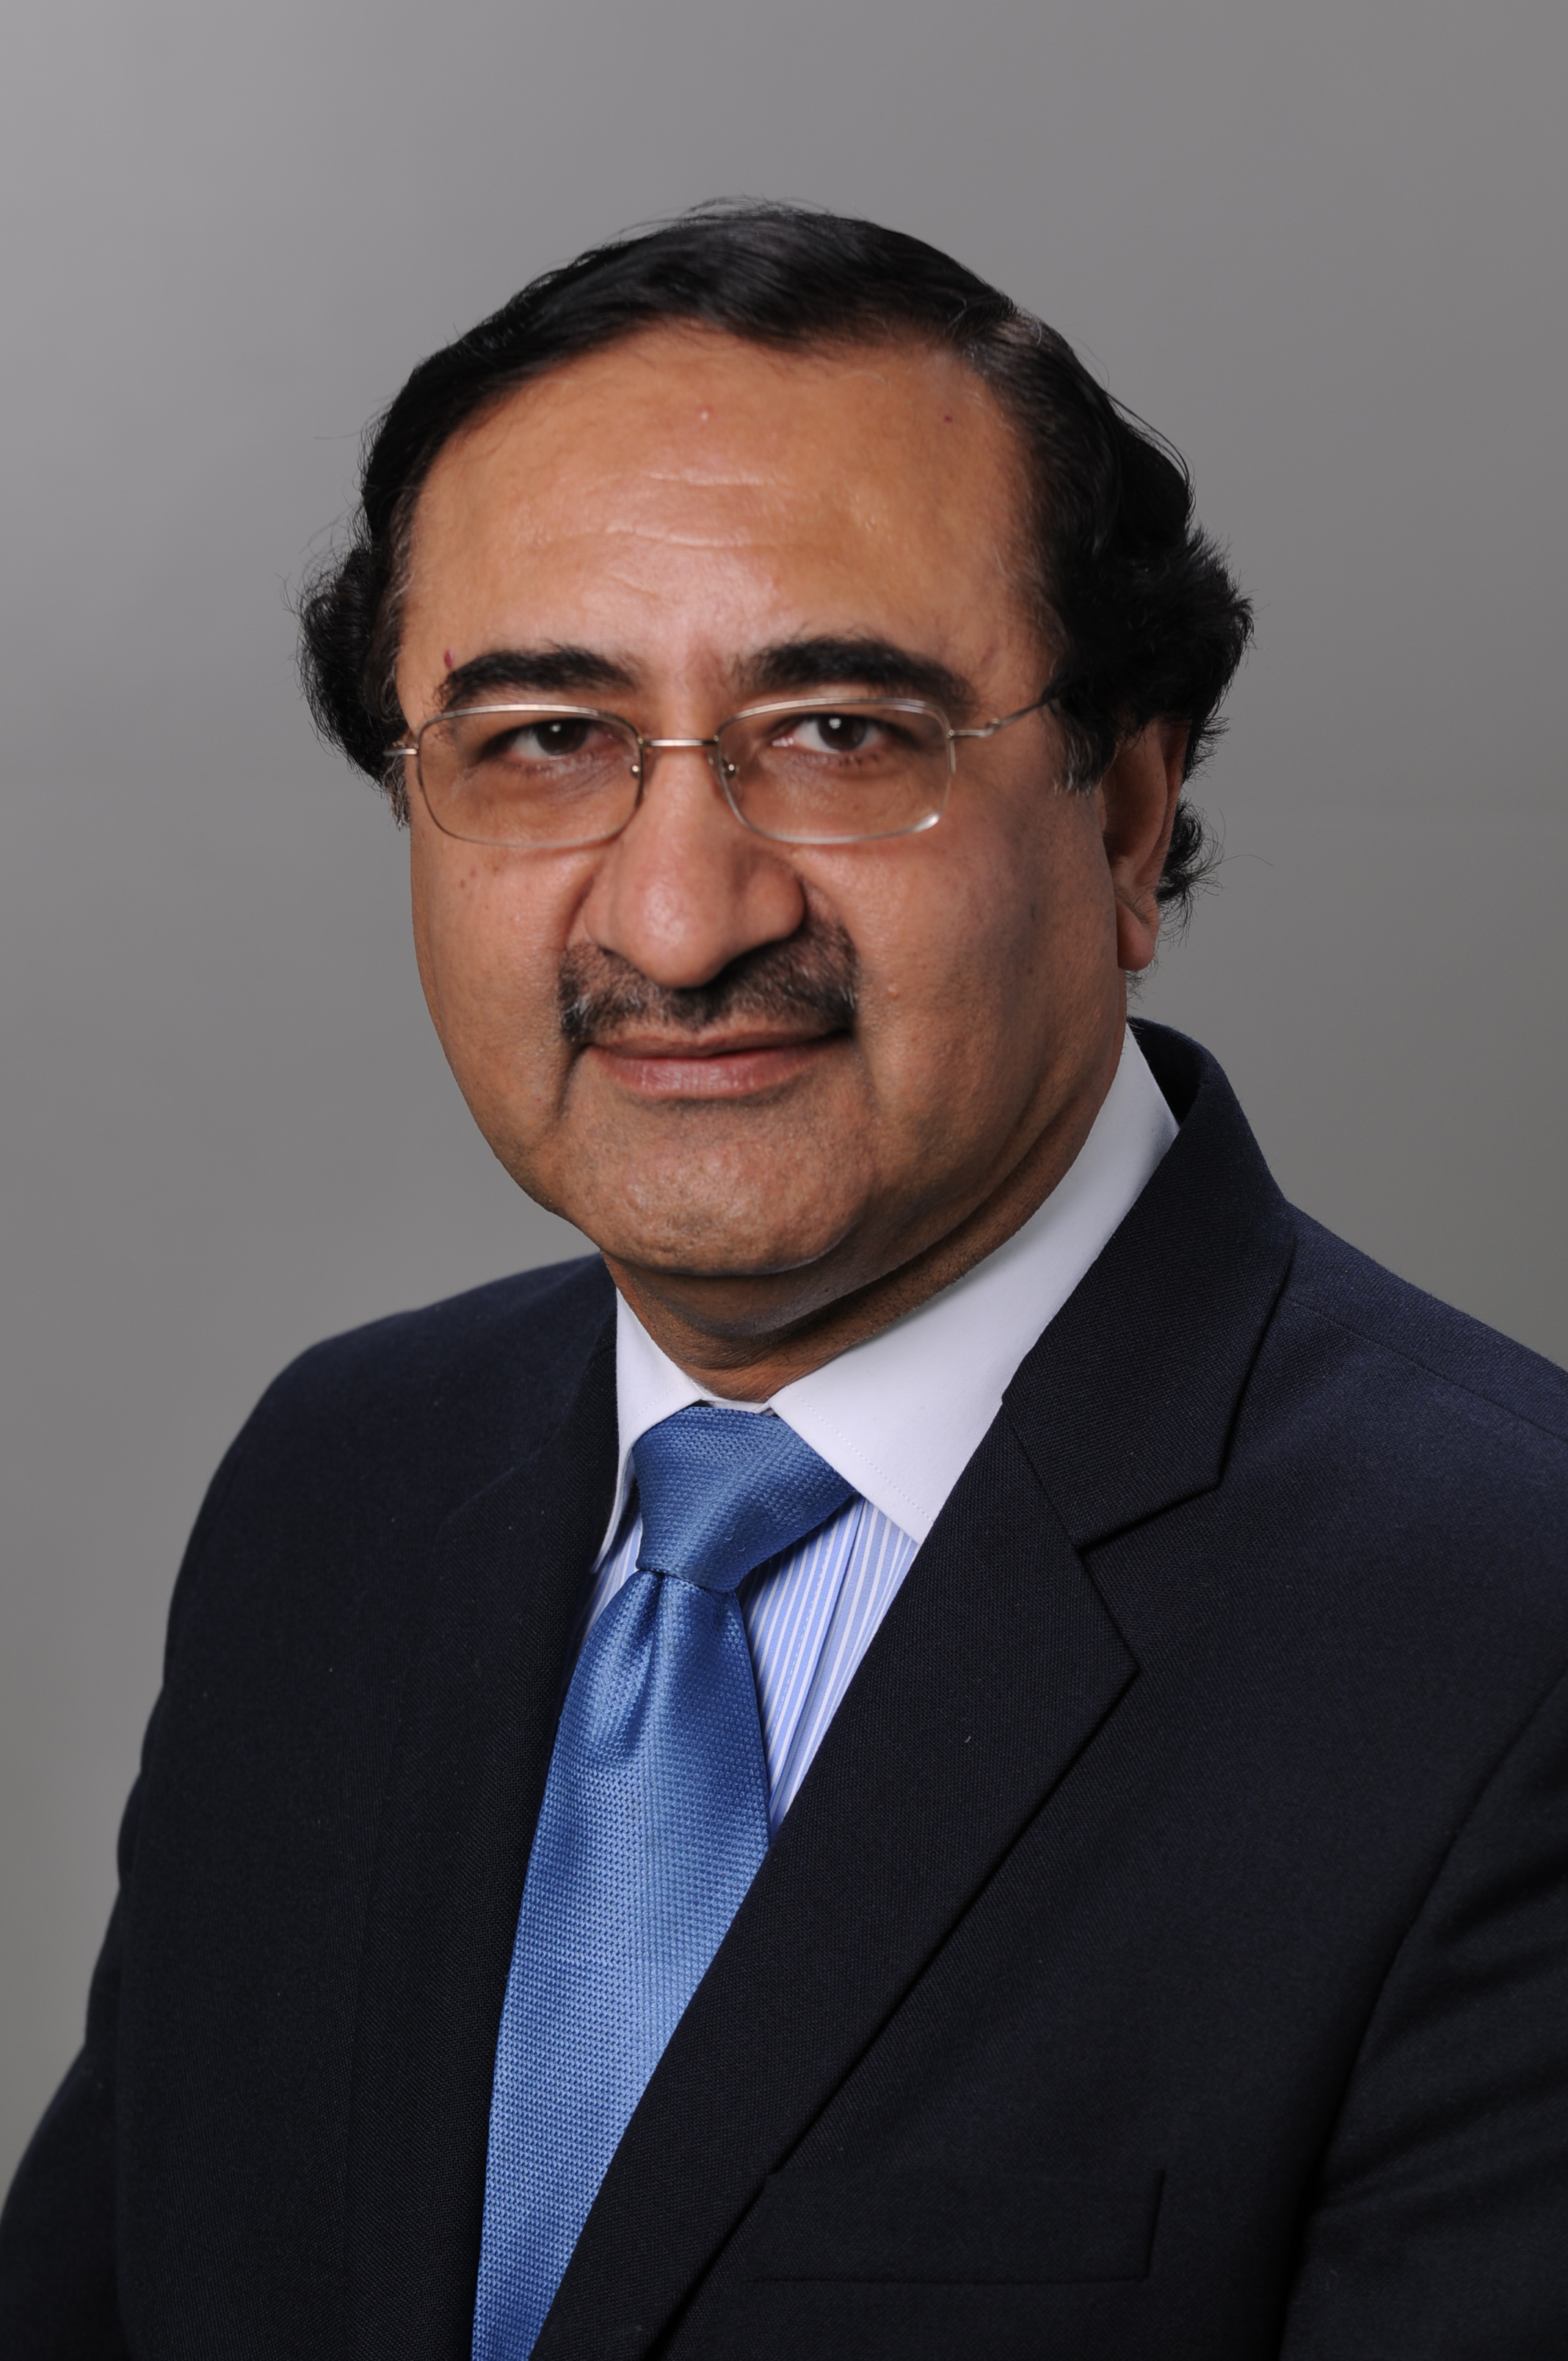 Speaker at Dental conferences -Rakesh Malhotra